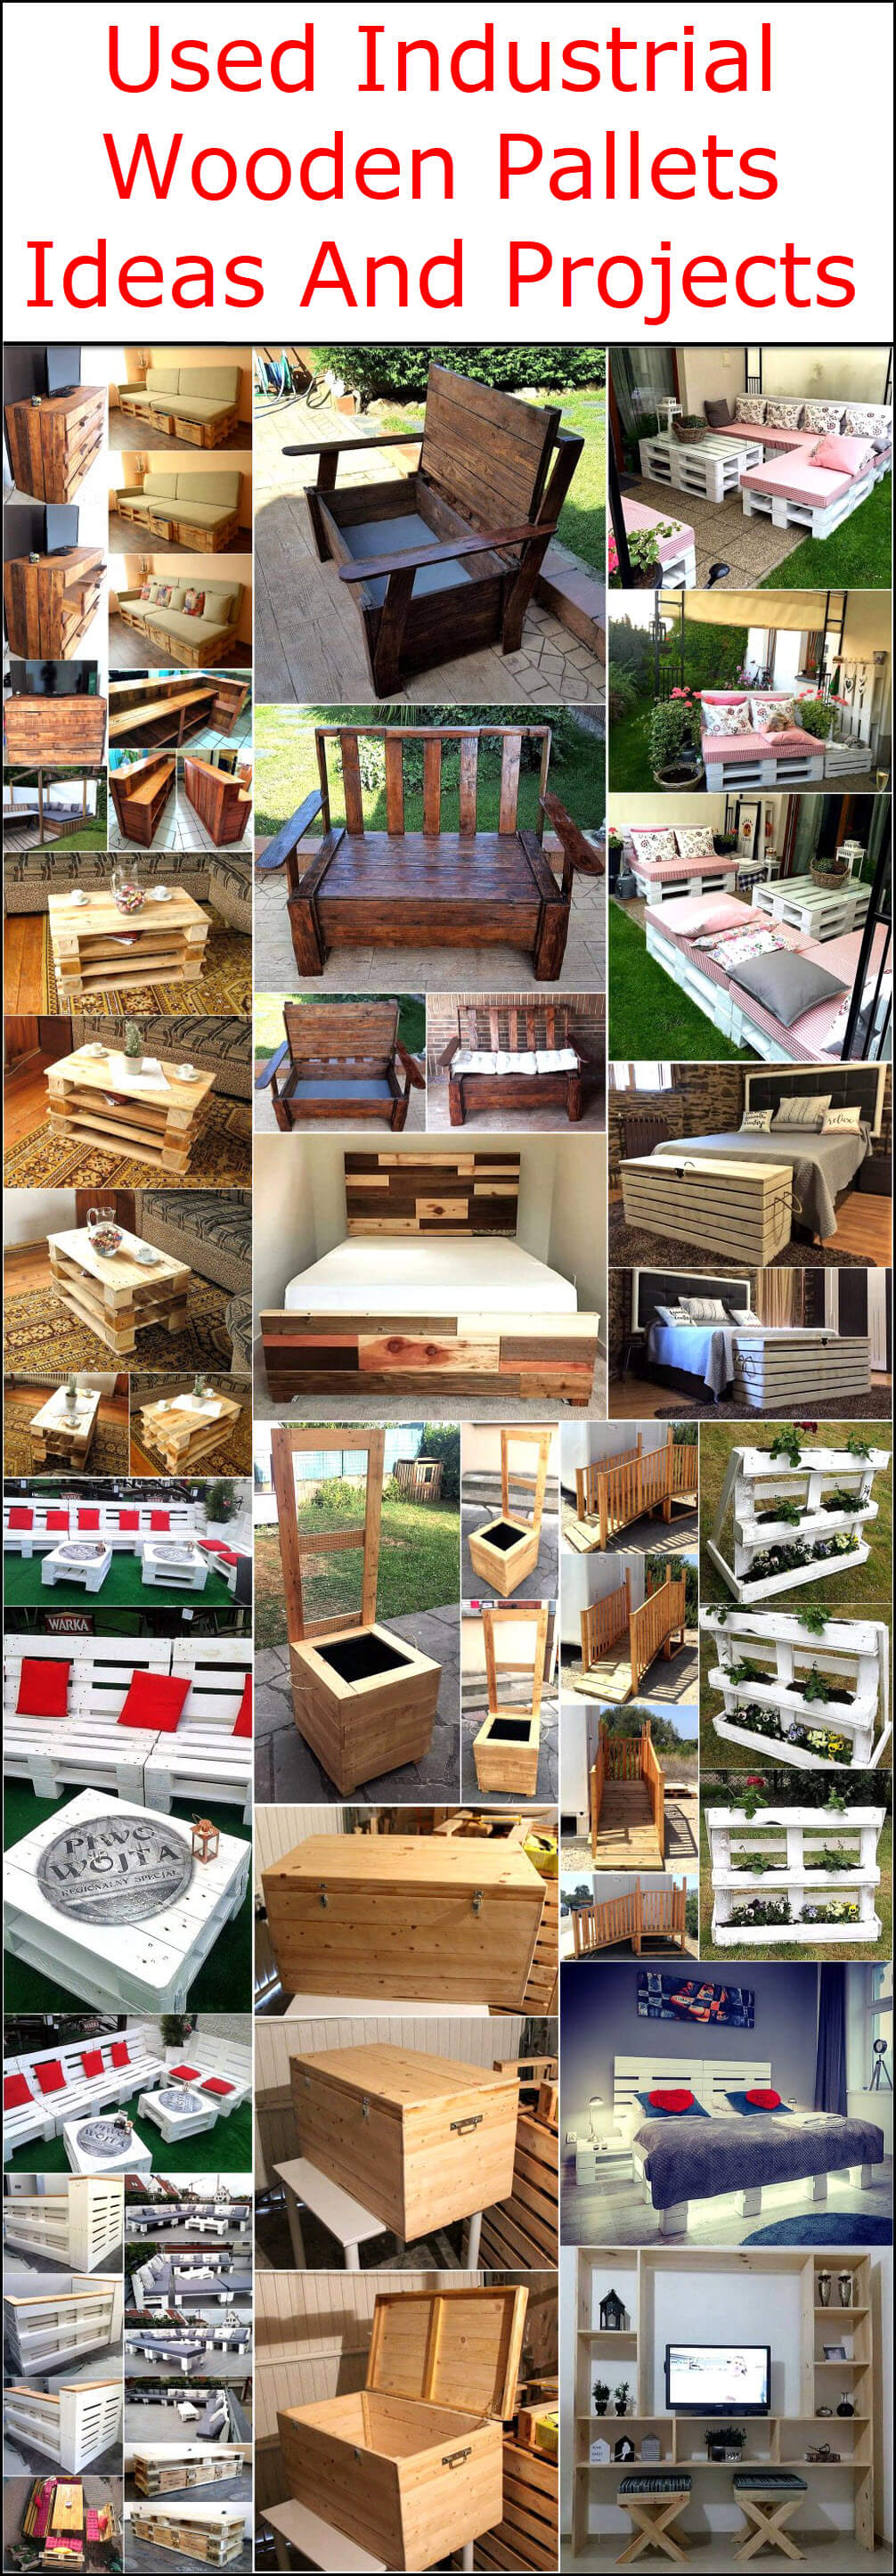 Used Industrial Wooden Pallets Ideas And Projects